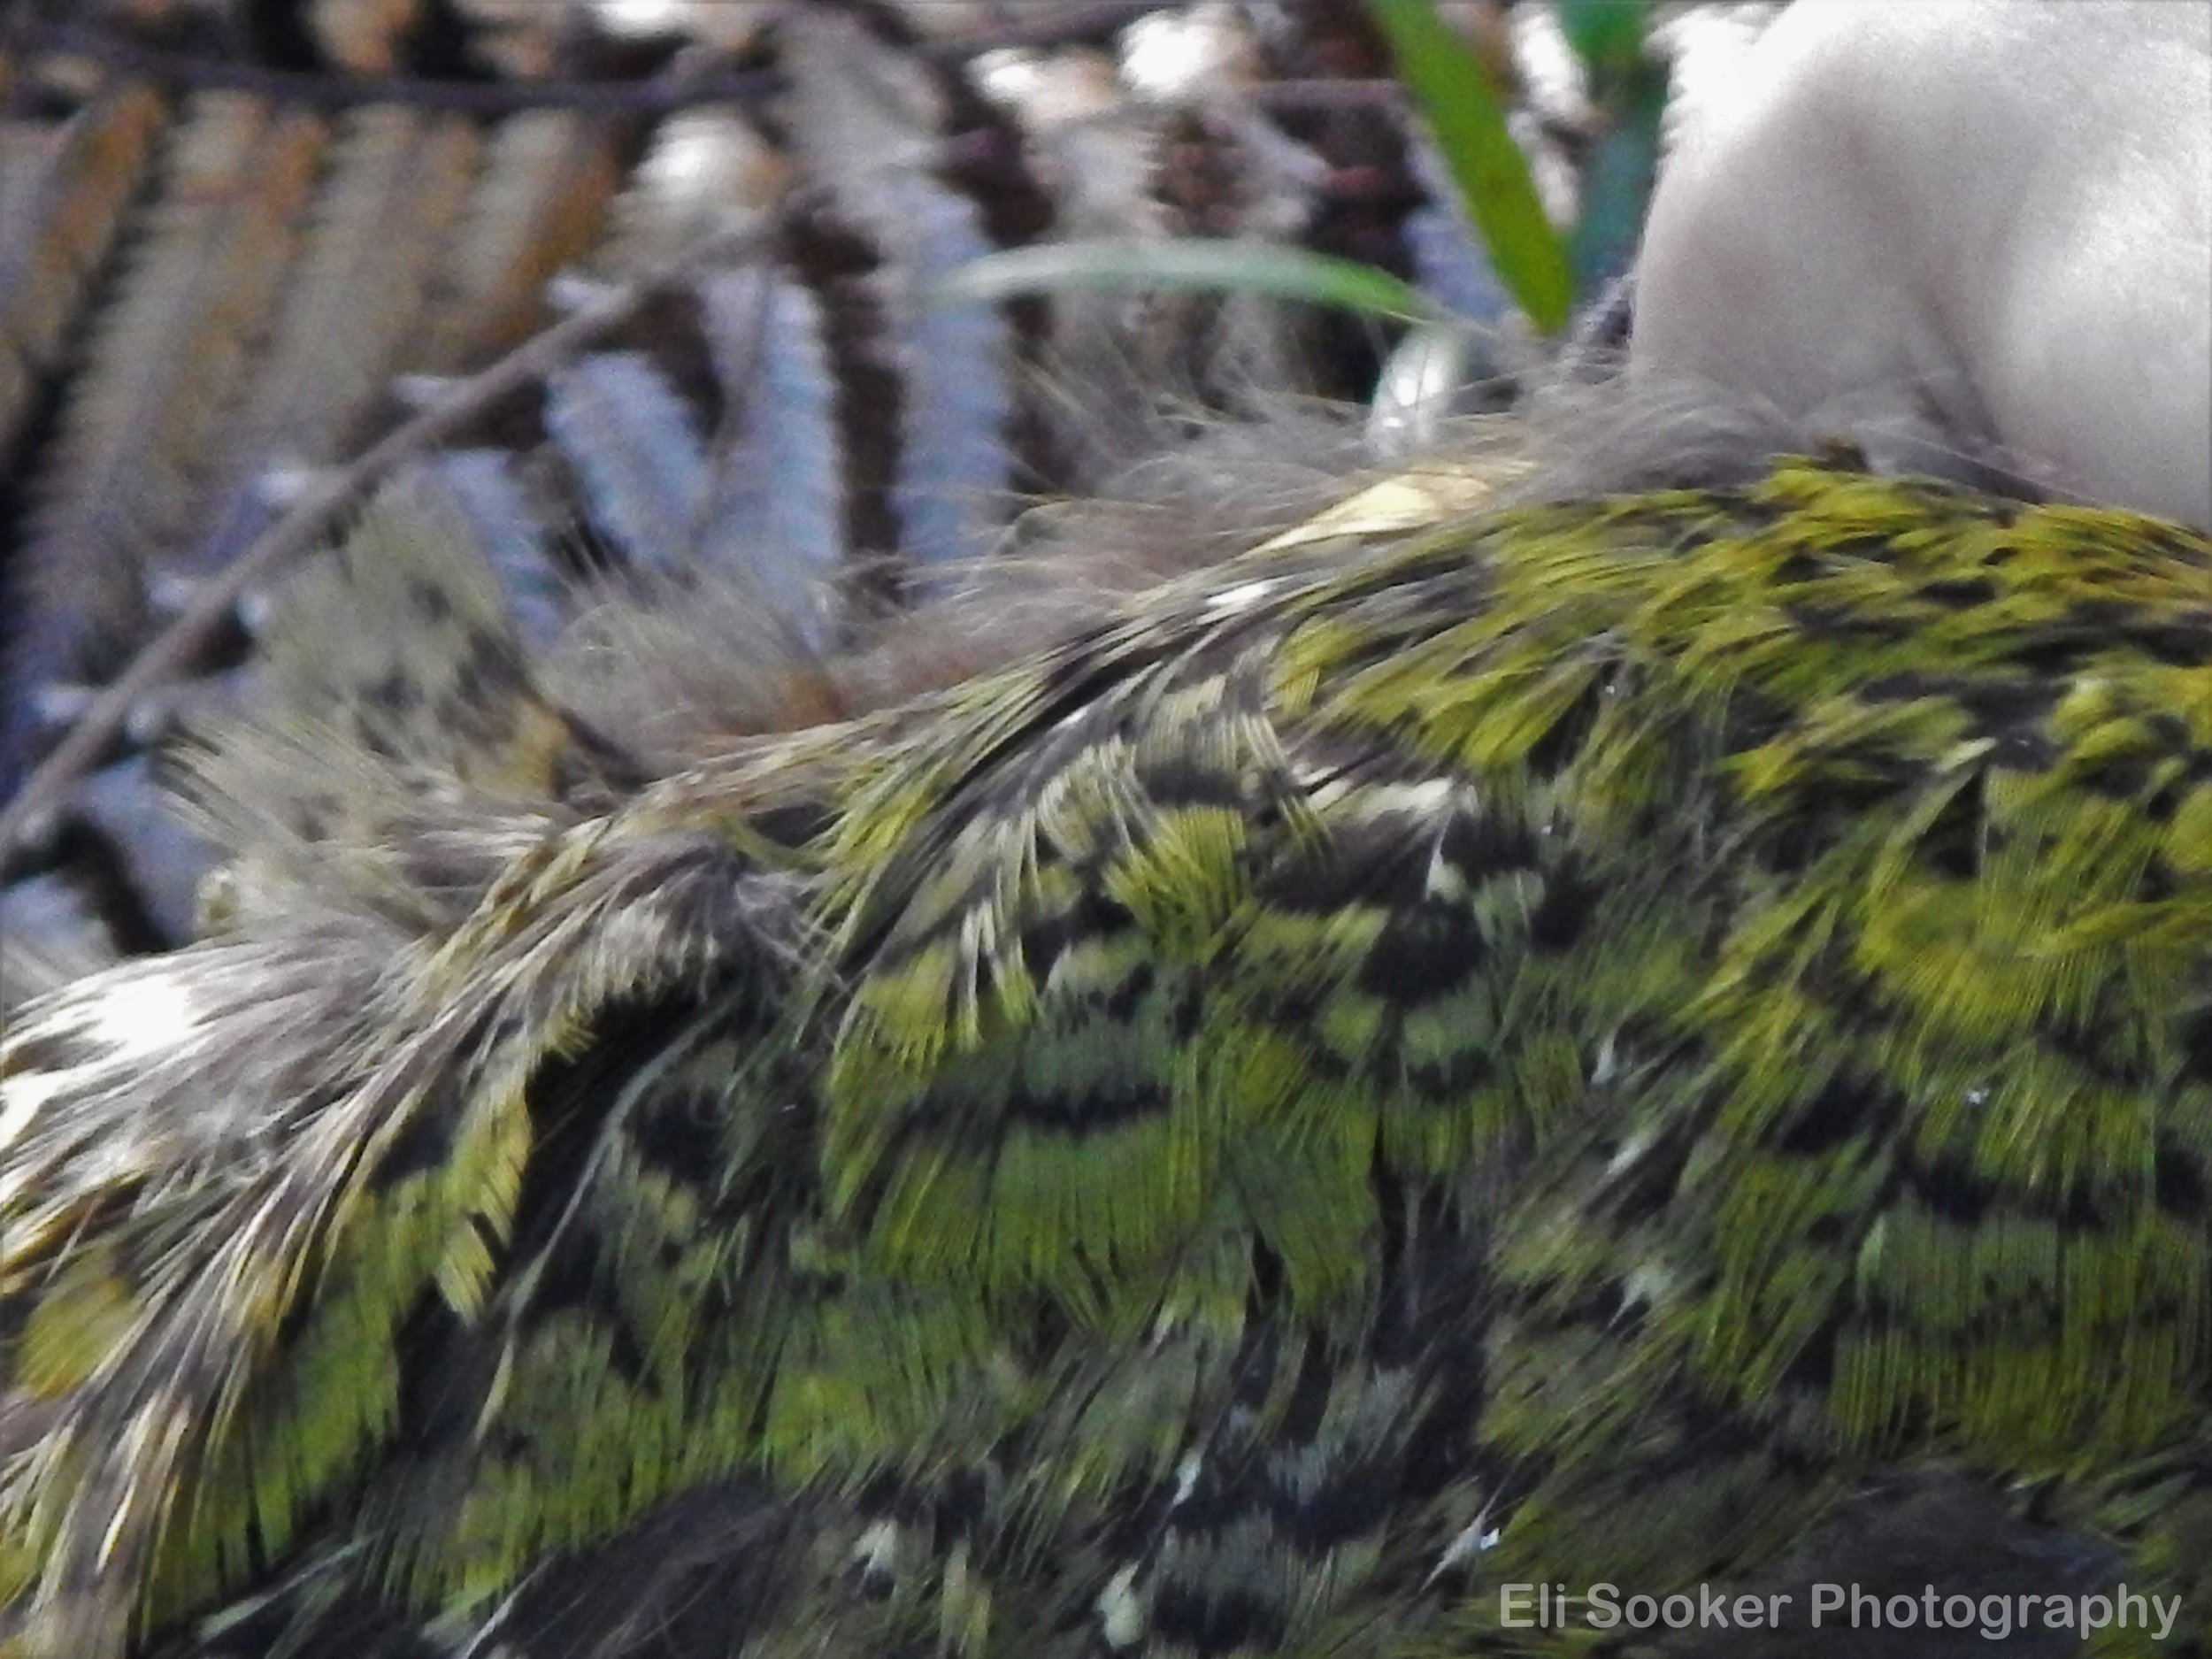 Close-up on kakapo feathers